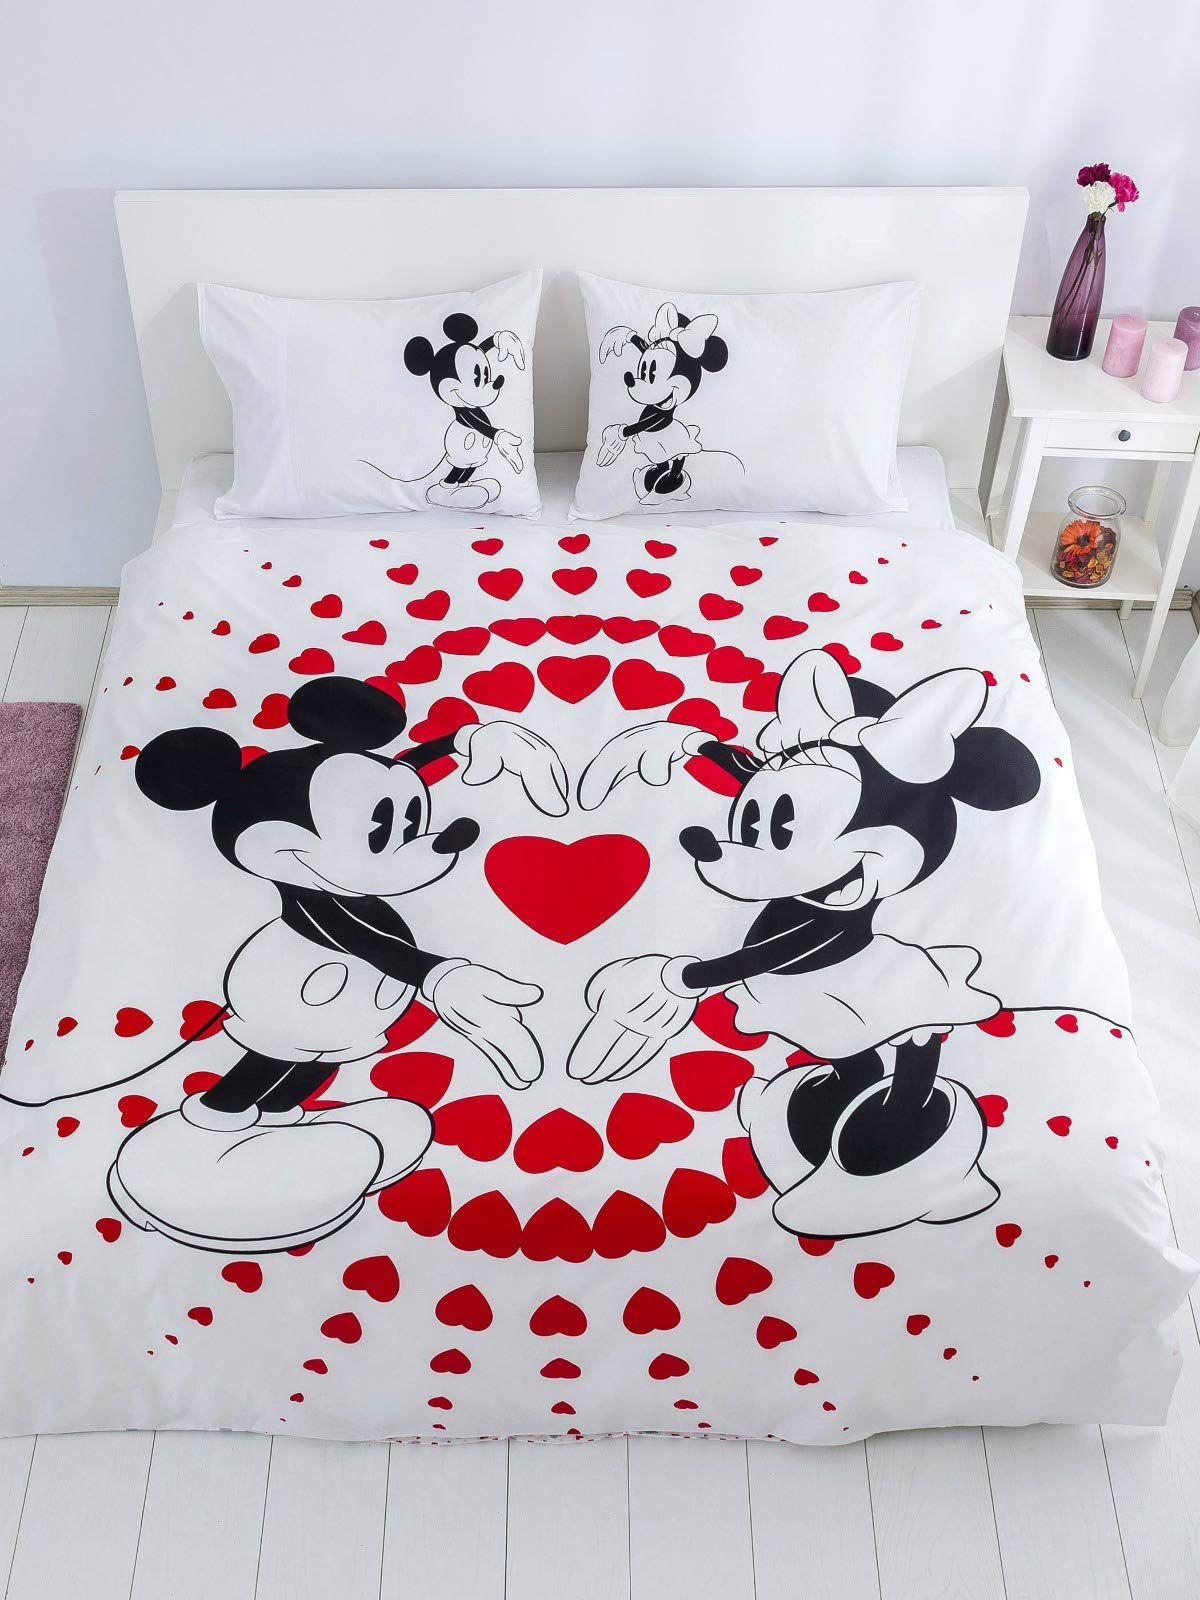 Minnie Mickey Mouse Bedding Set, Love Hearts Themed Quilt/Duvet Cover Set with Fitted Sheet, Reversible, Single/Twin Size, Red Black White, Comforter Included (4 PCS)